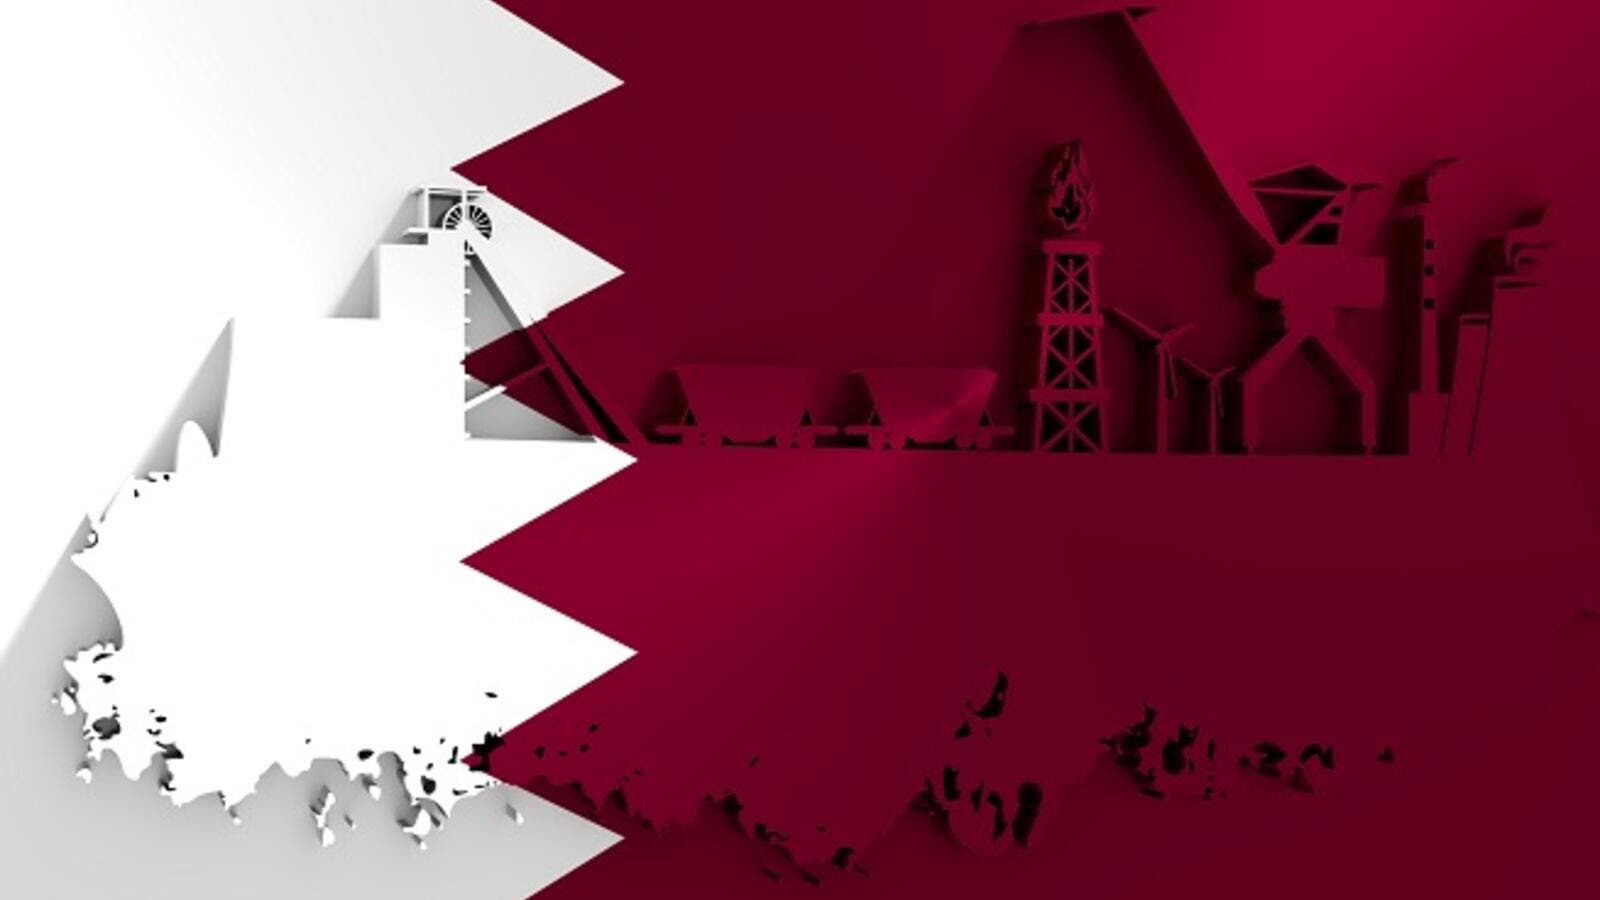 Qatar is preparing to speed up the growth of its natural gas sector by 30 percent. (Shutterstock)